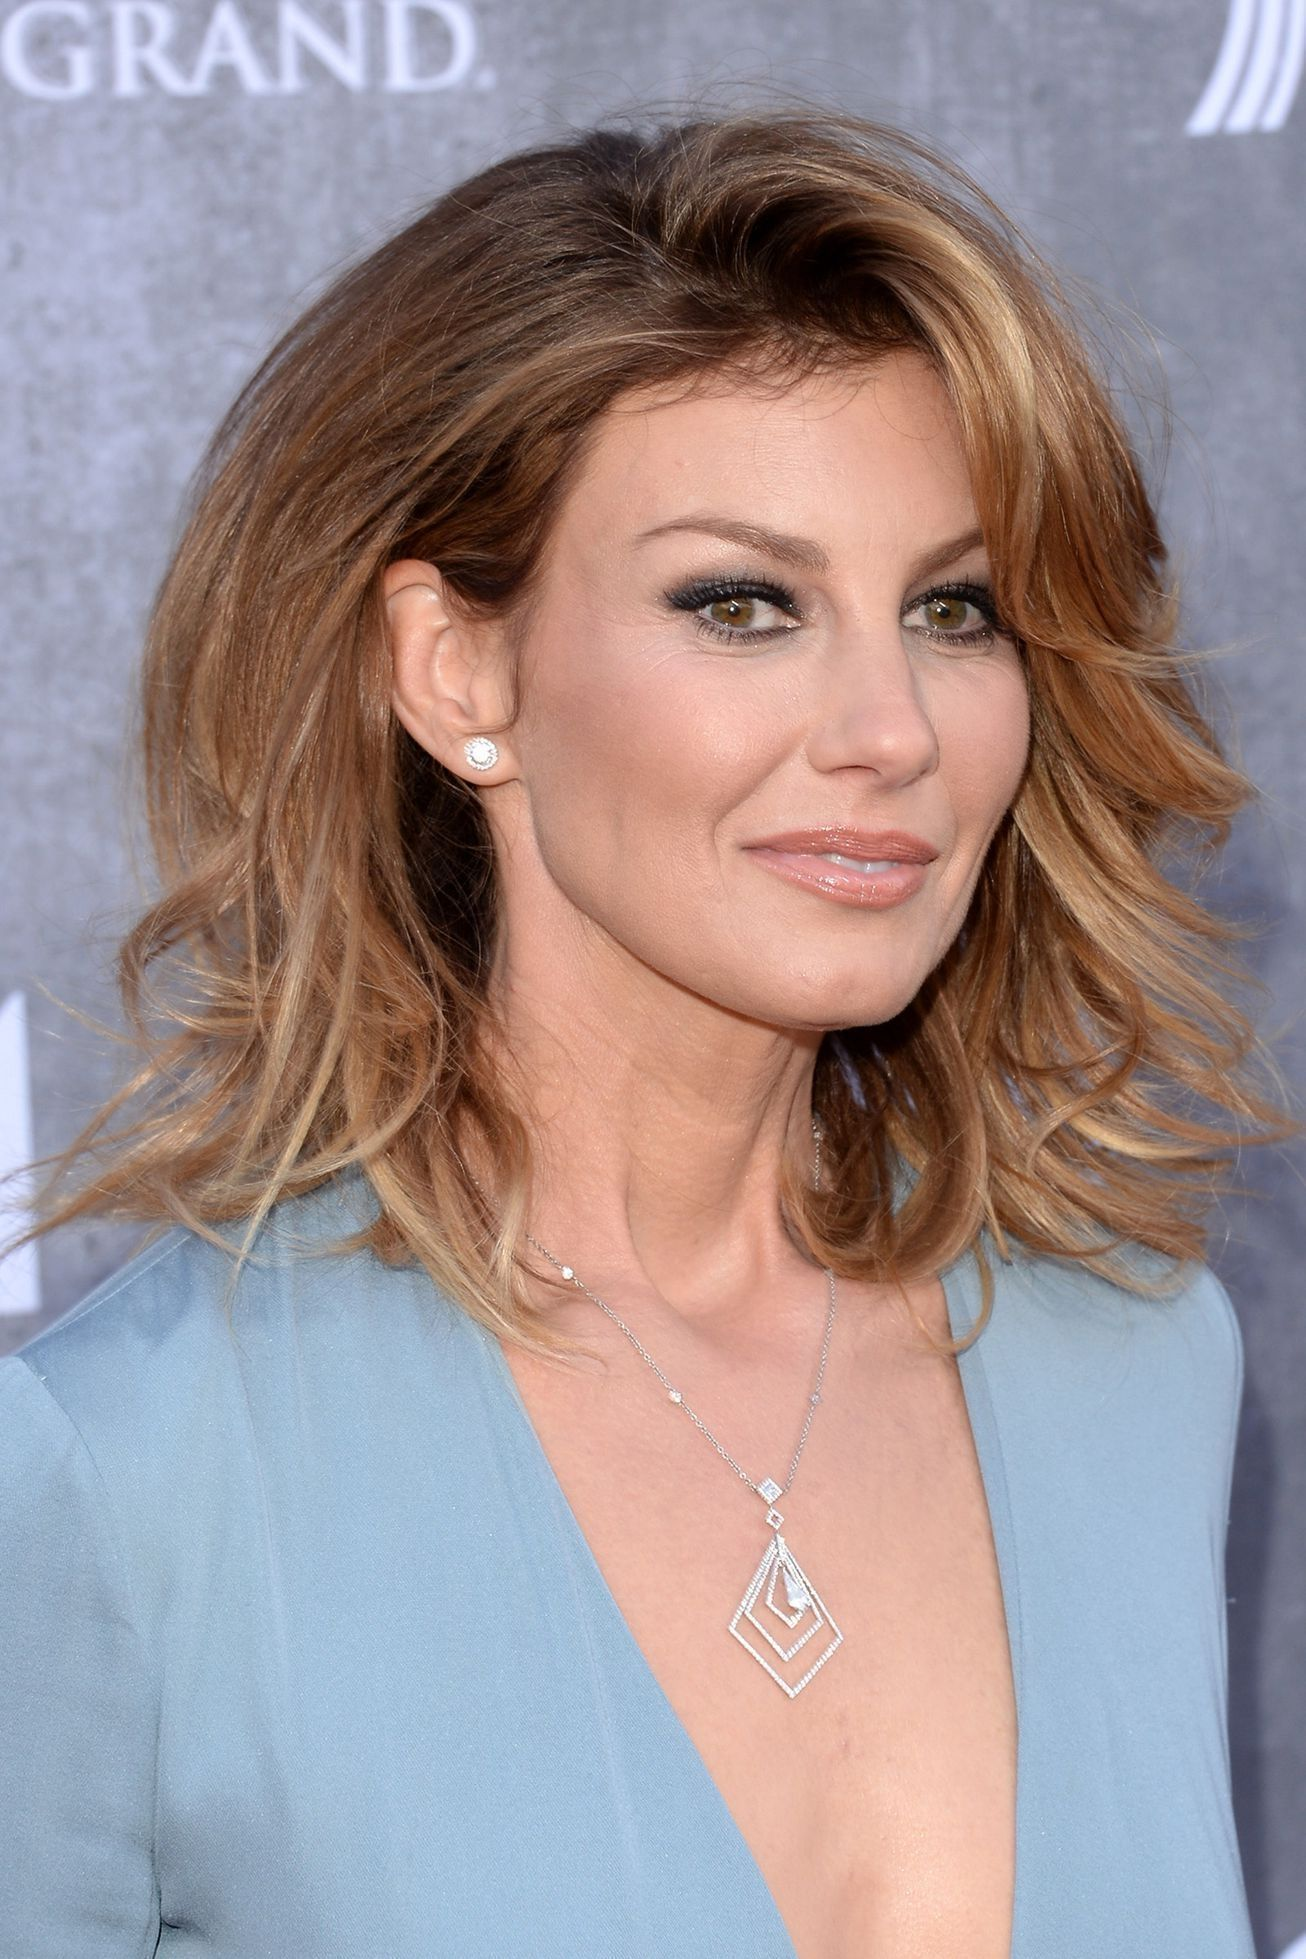 35 most popular haircuts and hairstyles for women over 30